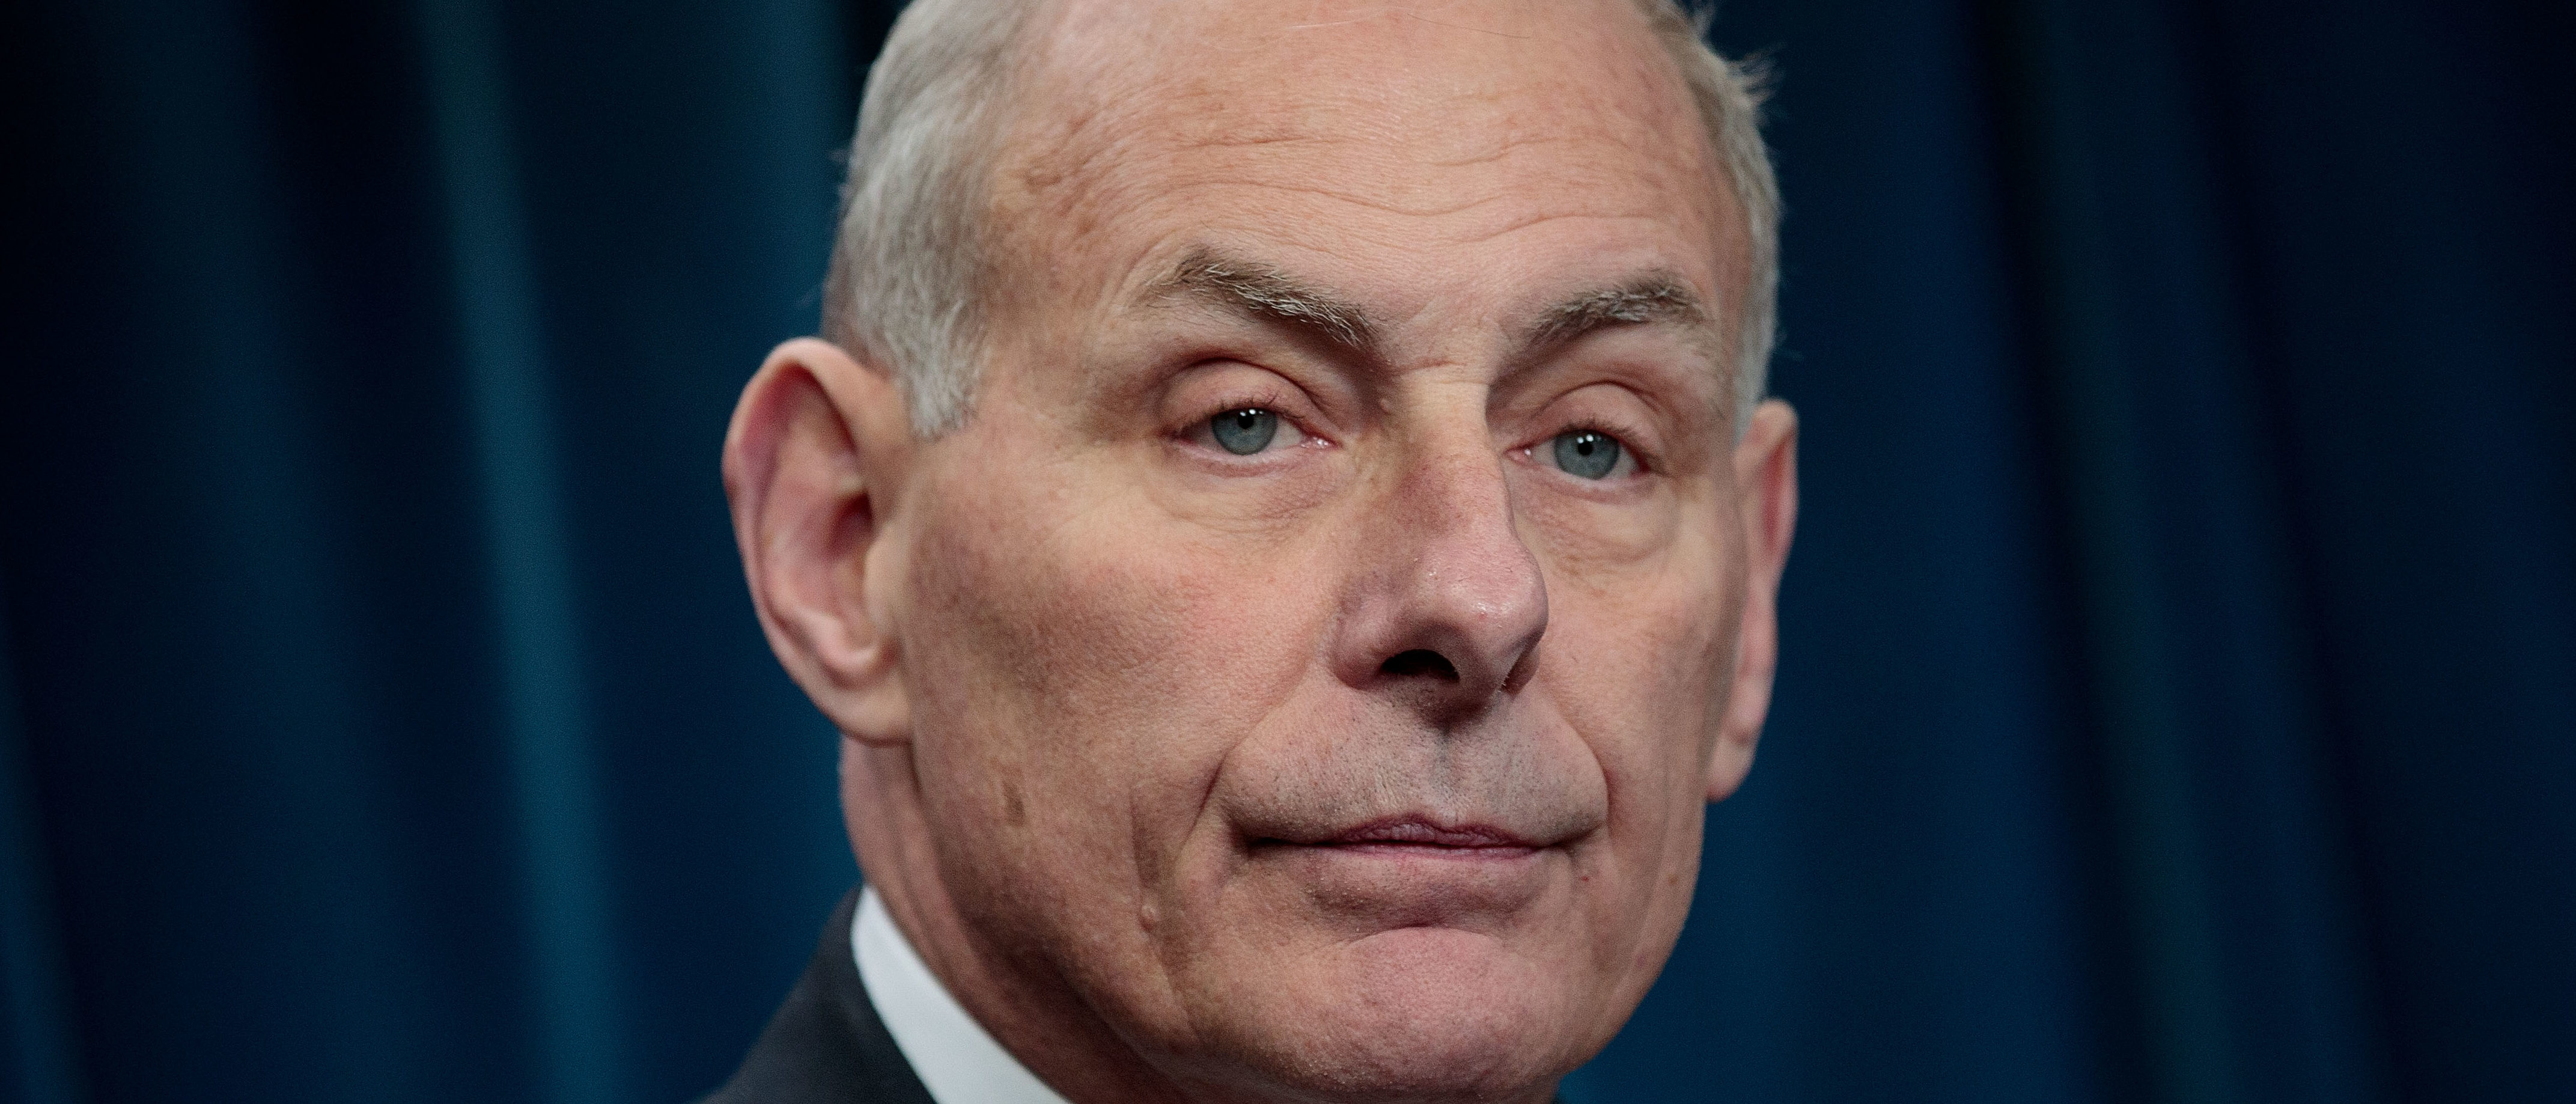 WASHINGTON, DC - JANUARY 31: Secretary of Homeland Security John Kelly answers questions during a press conference related to President Donald Trump's recent executive order concerning travel and refugees, January 31, 2017 in Washington, DC. On Monday night, President Donald Trump fired the acting Attorney General Sally Yates after she released a statement saying the Justice Department would not enforce the president's executive order that places a temporary ban on citizens from seven Muslim-majority countries. (Photo by Drew Angerer/Getty Images)